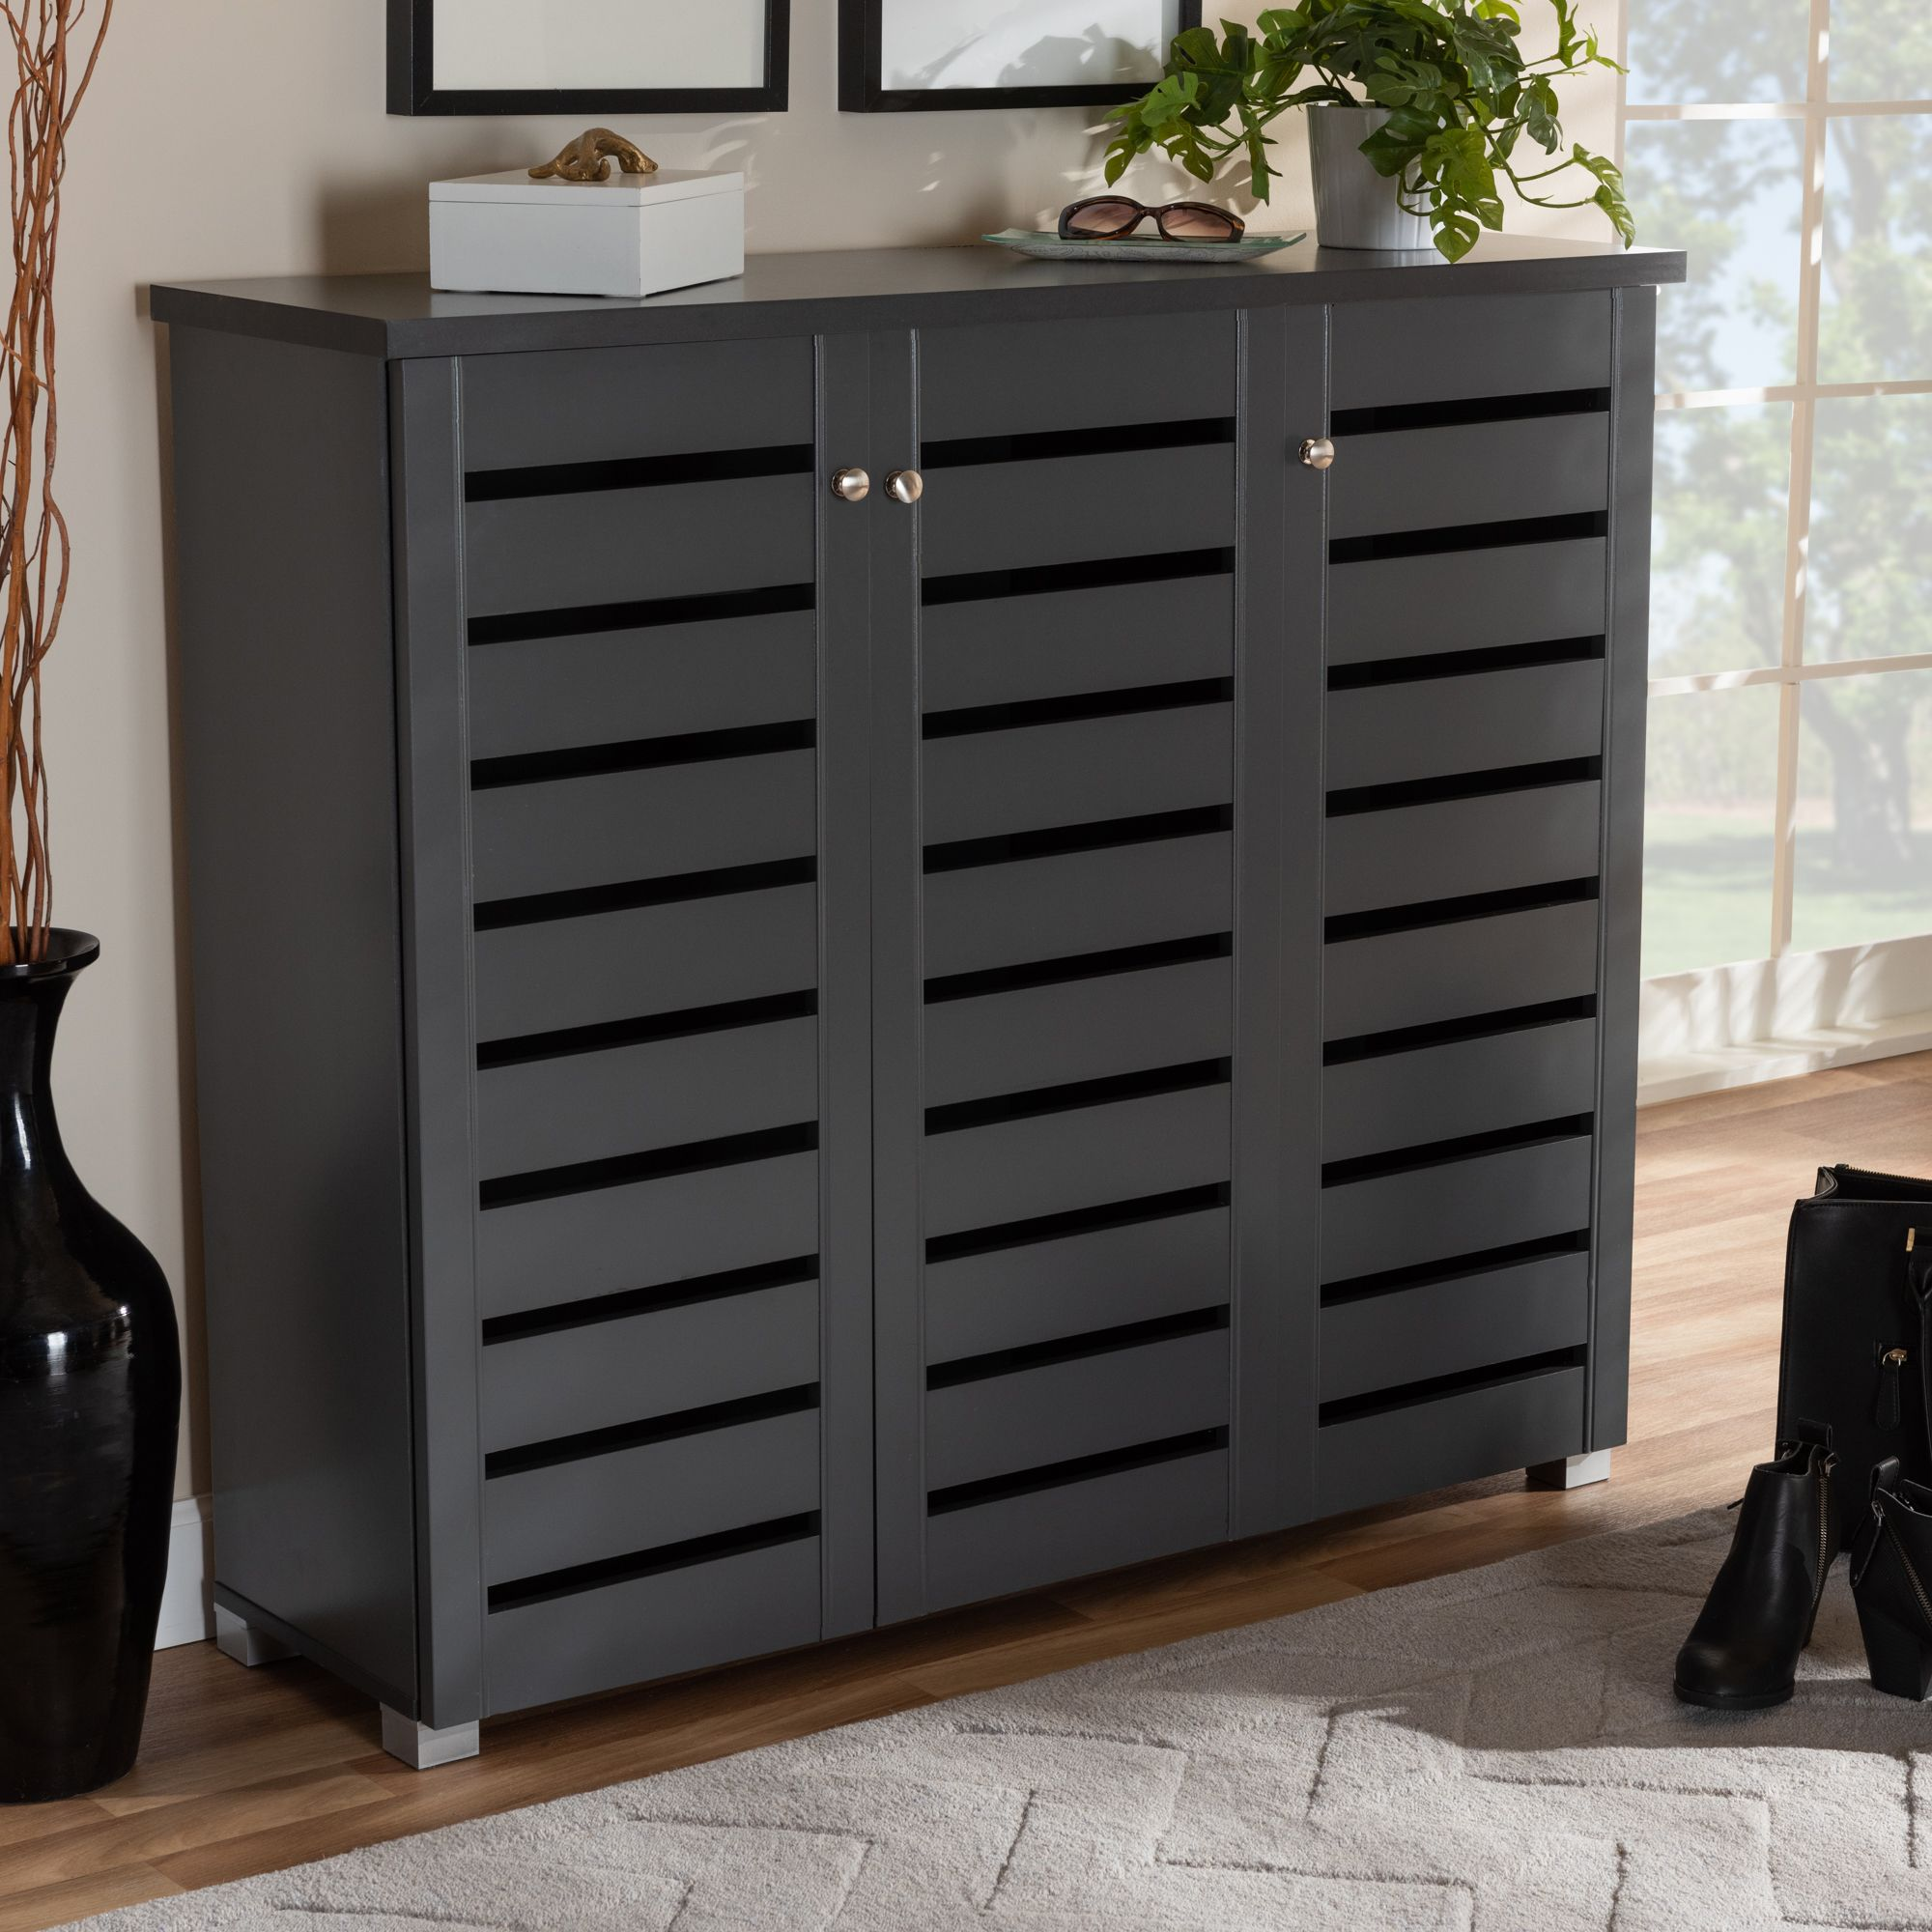 Baxton Studio Adalwin Modern And Contemporary Dark Gray 3 Door Wooden Entryway Shoe Storage Cabinet Shoe Storage Cabinet Entryway Shoe Storage Storage Cabinet